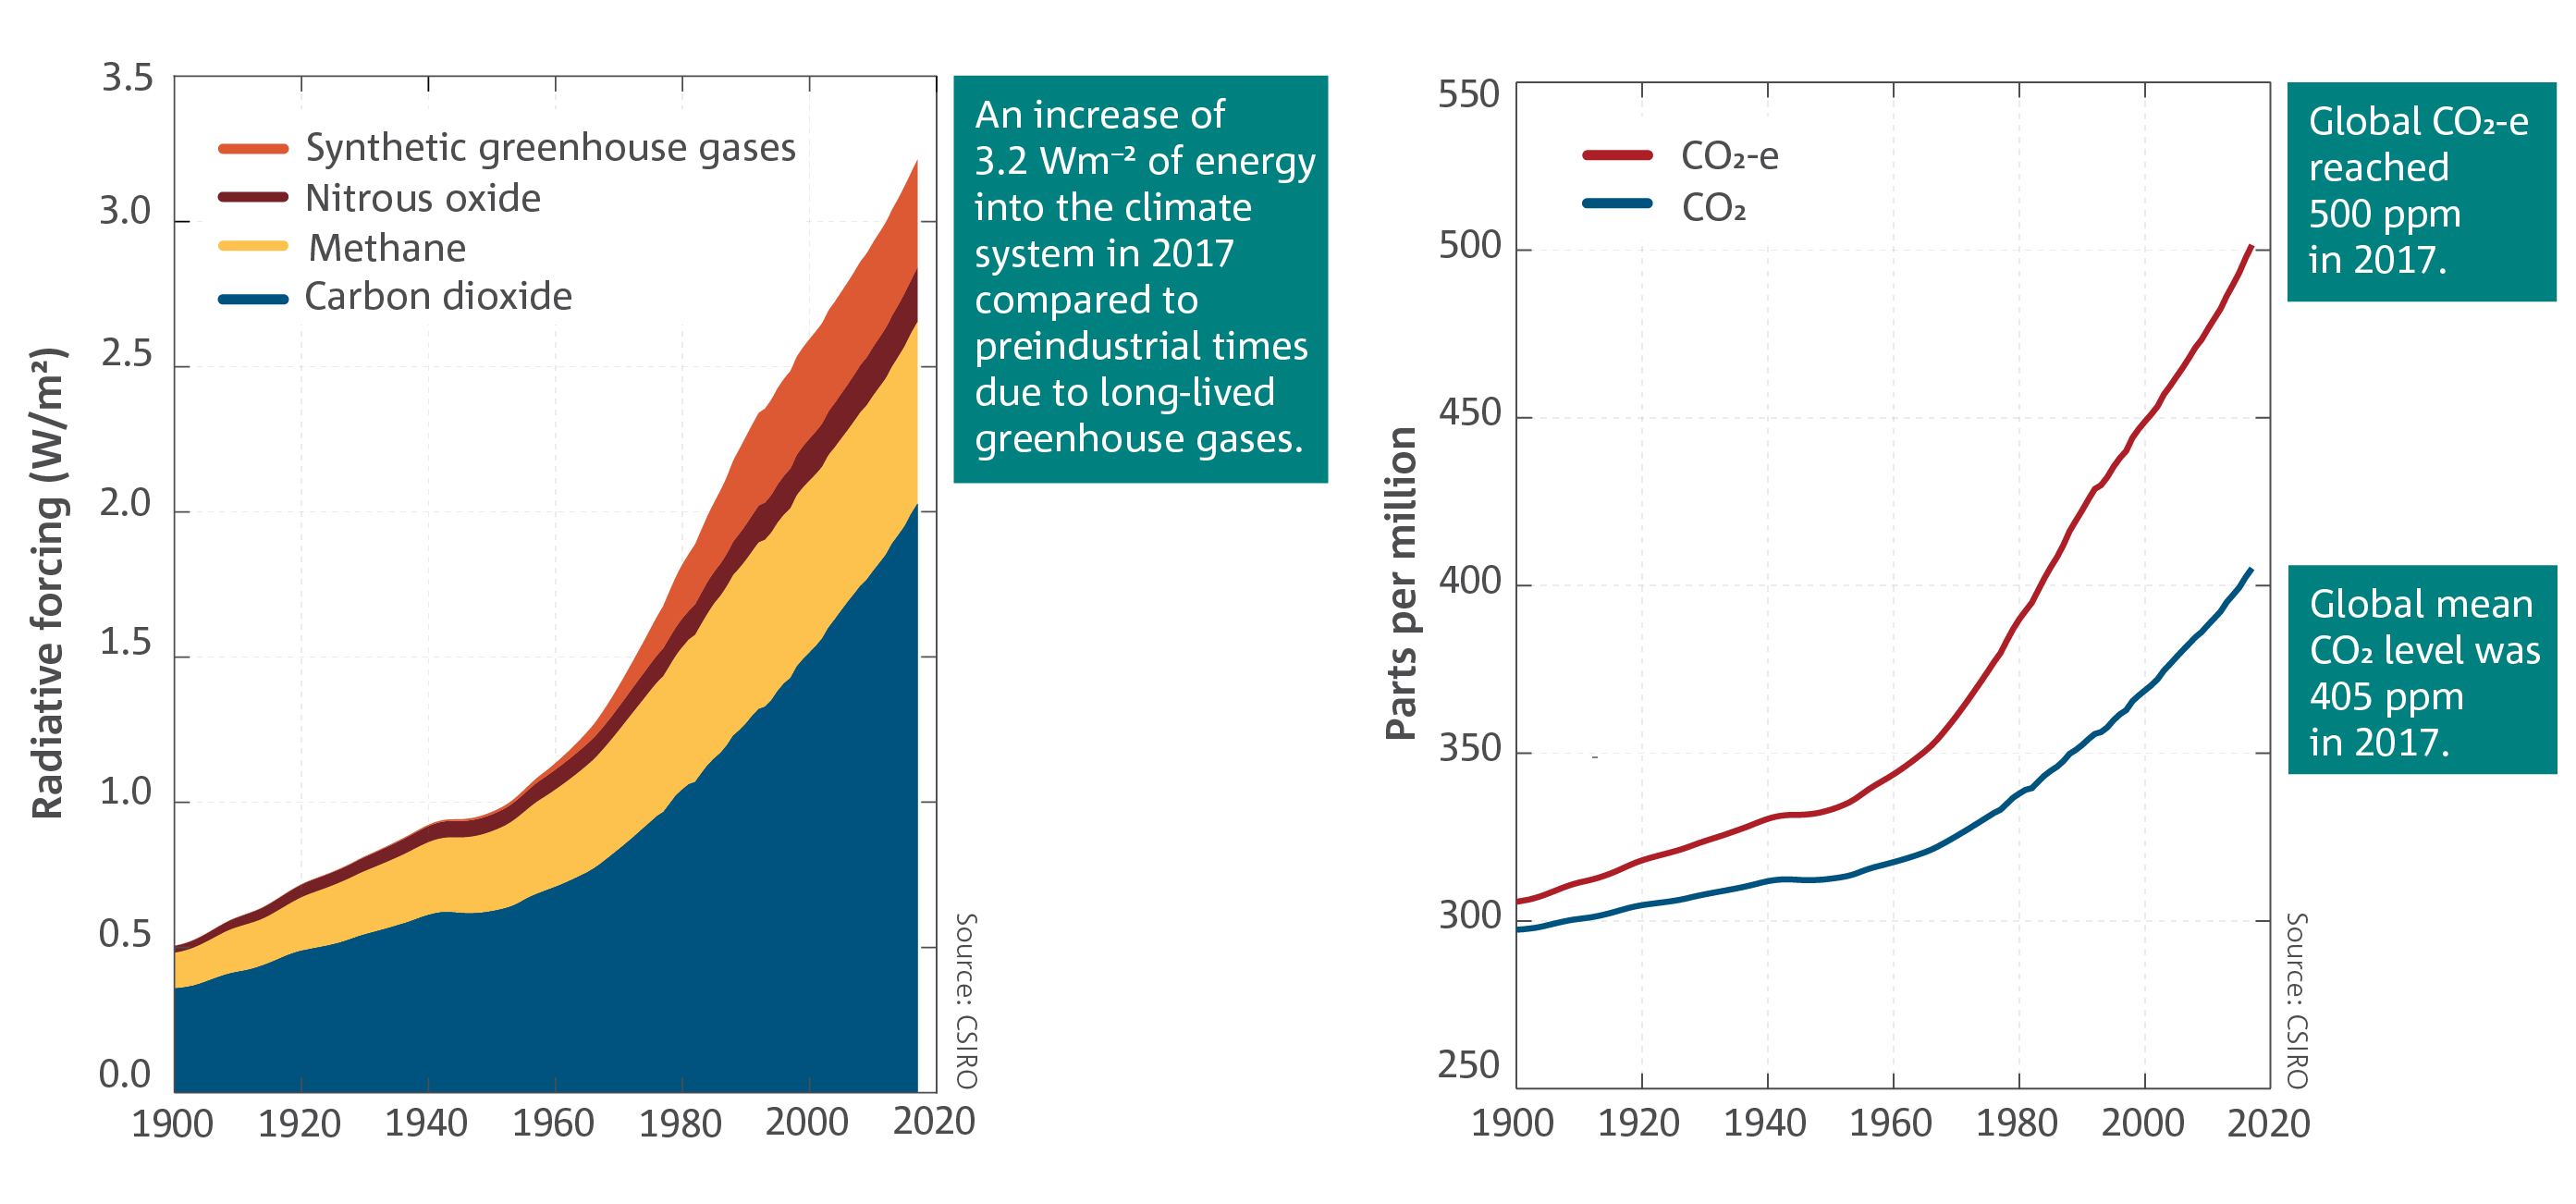 Left: Radiative forcing relative to 1750 due to the long-lived greenhouse gases carbon dioxide, methane, nitrous oxide and the synthetic greenhouse gases, expressed as watts per metre squared. Right: Global mean CO2 concentration and global mean greenhouse gas concentrations expressed as equivalent CO2 (ppm: parts per million).